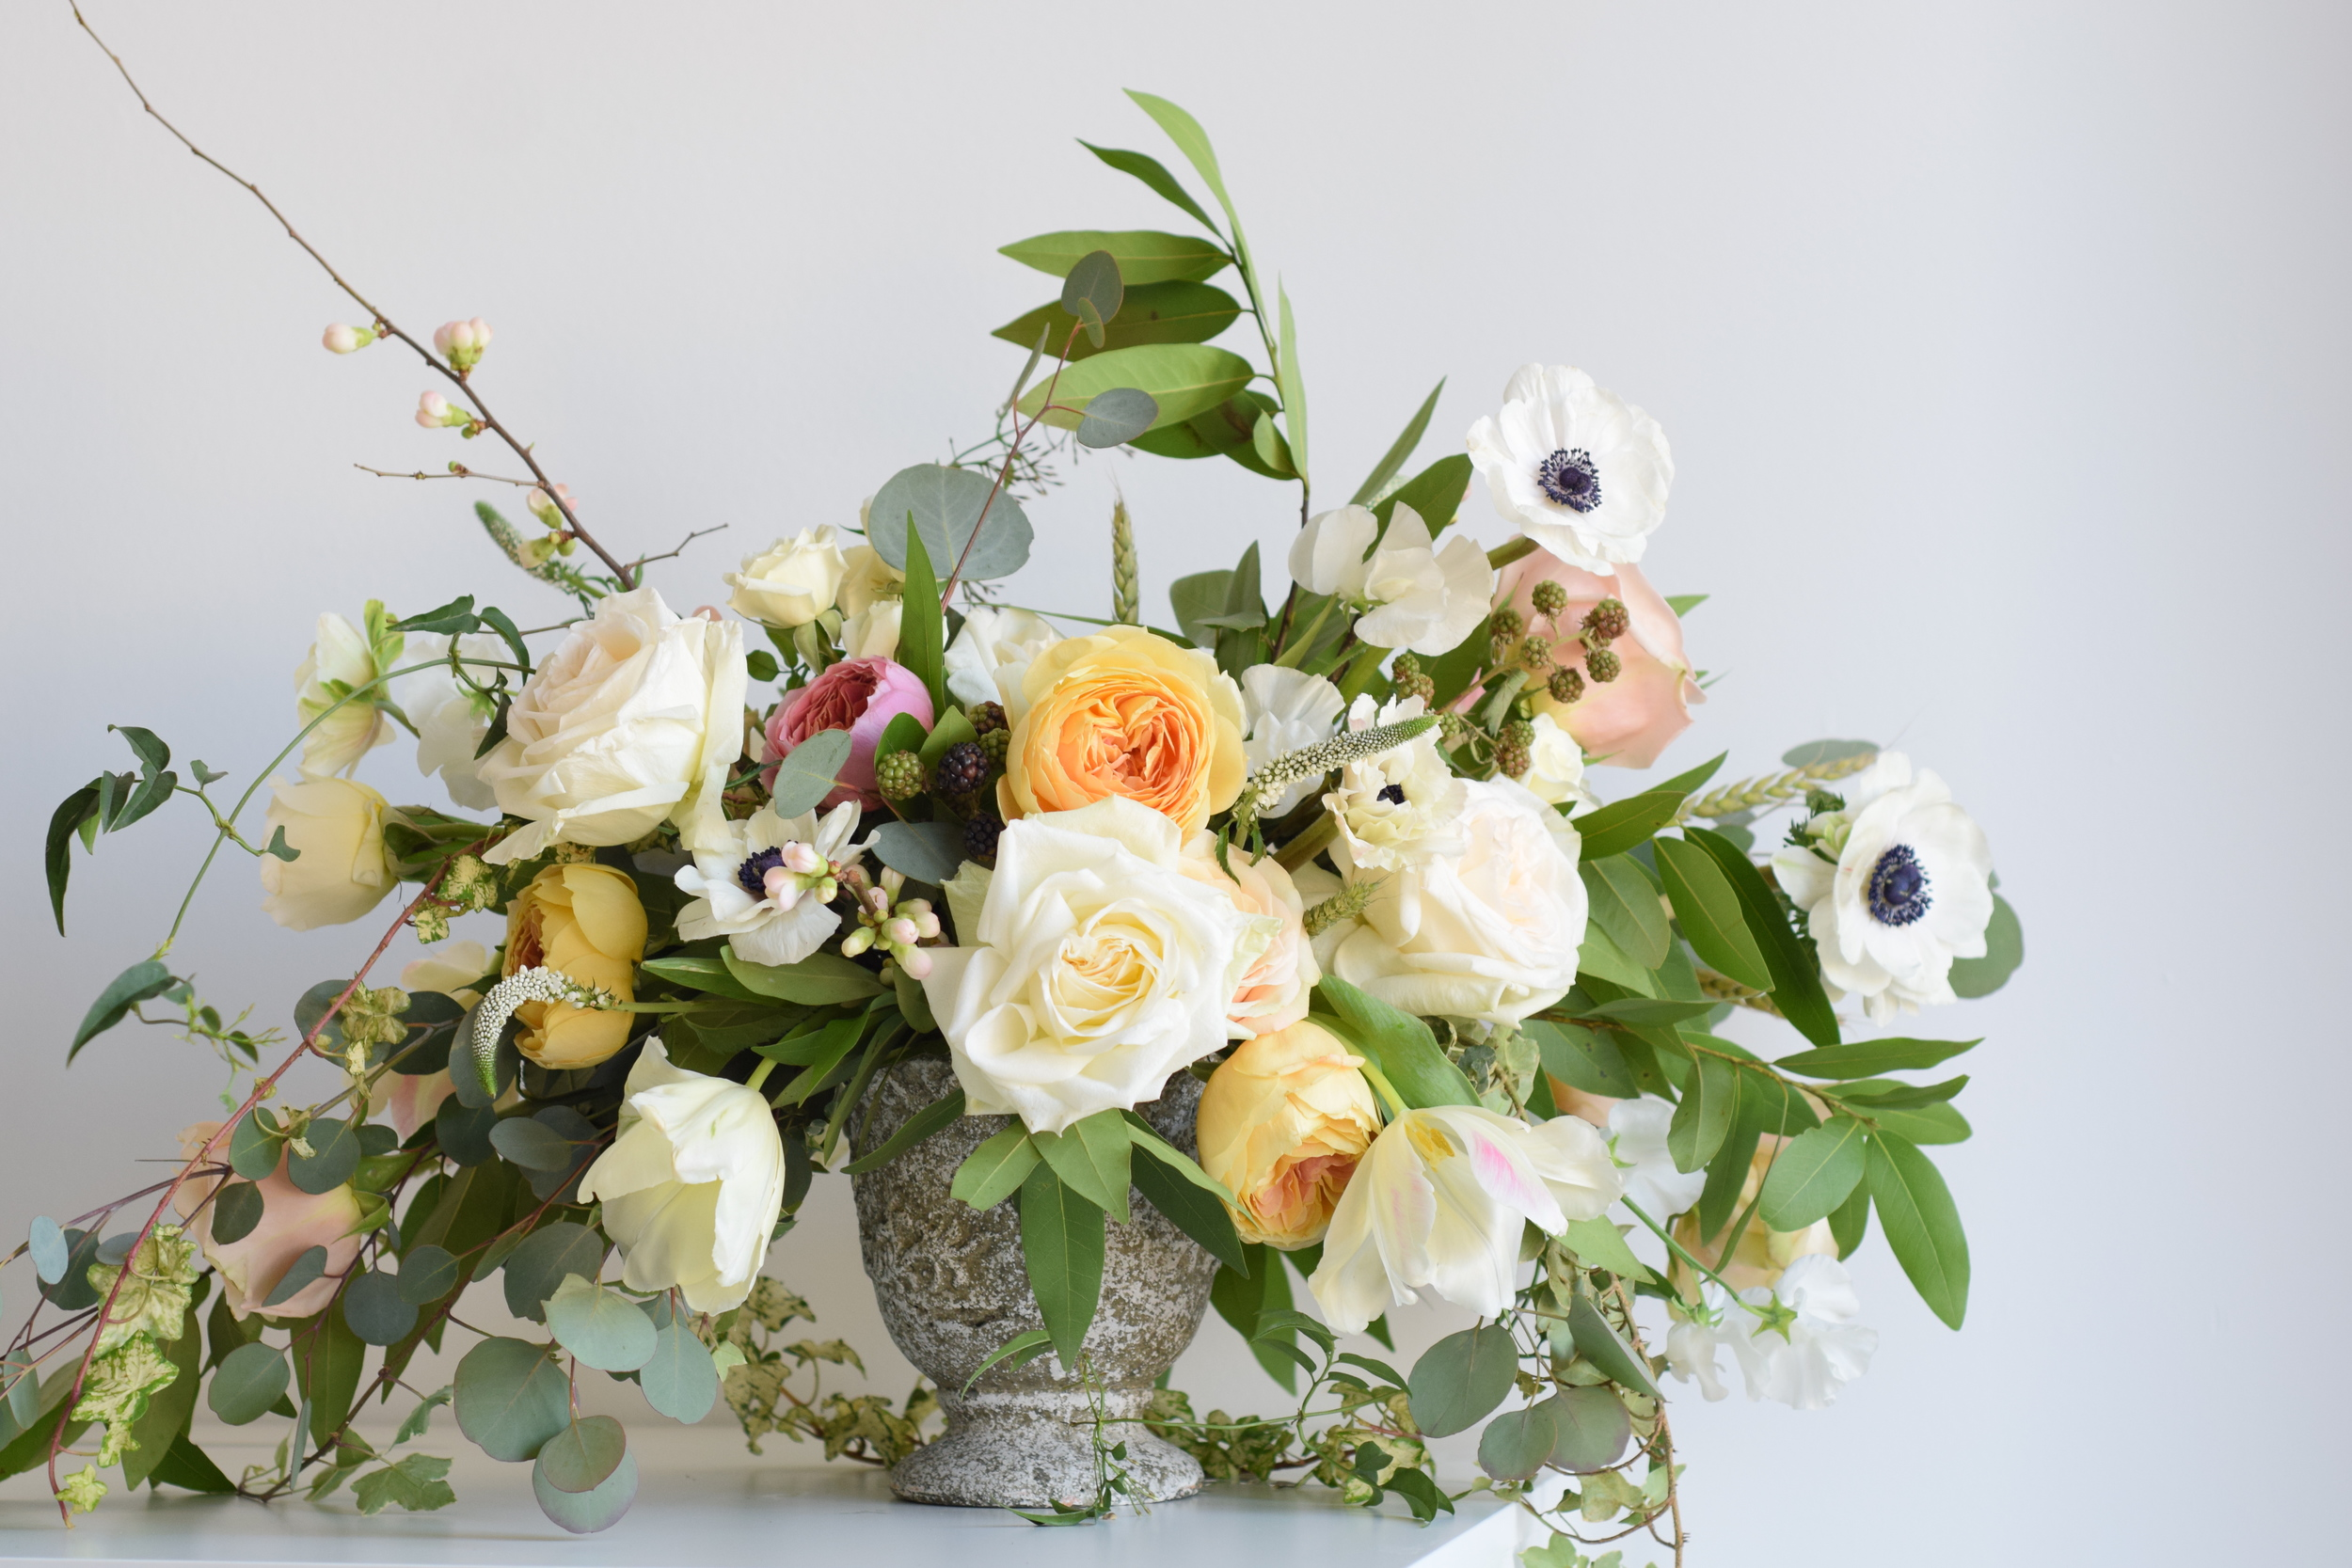 Organic loose arrangement featuring anemones by Maxit Flower Design.